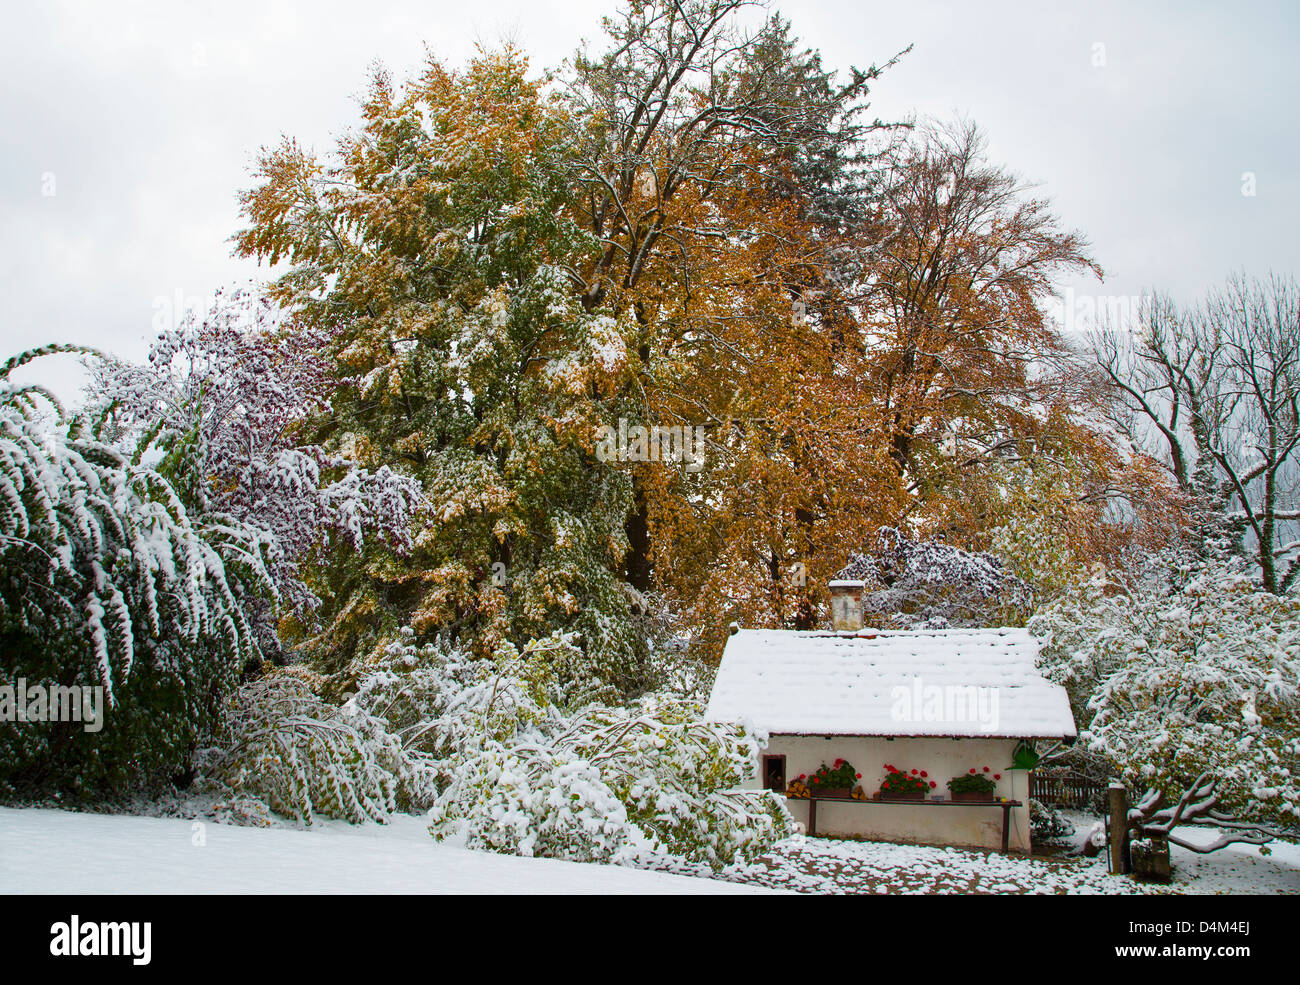 House and trees in snowy landscape Stock Photo